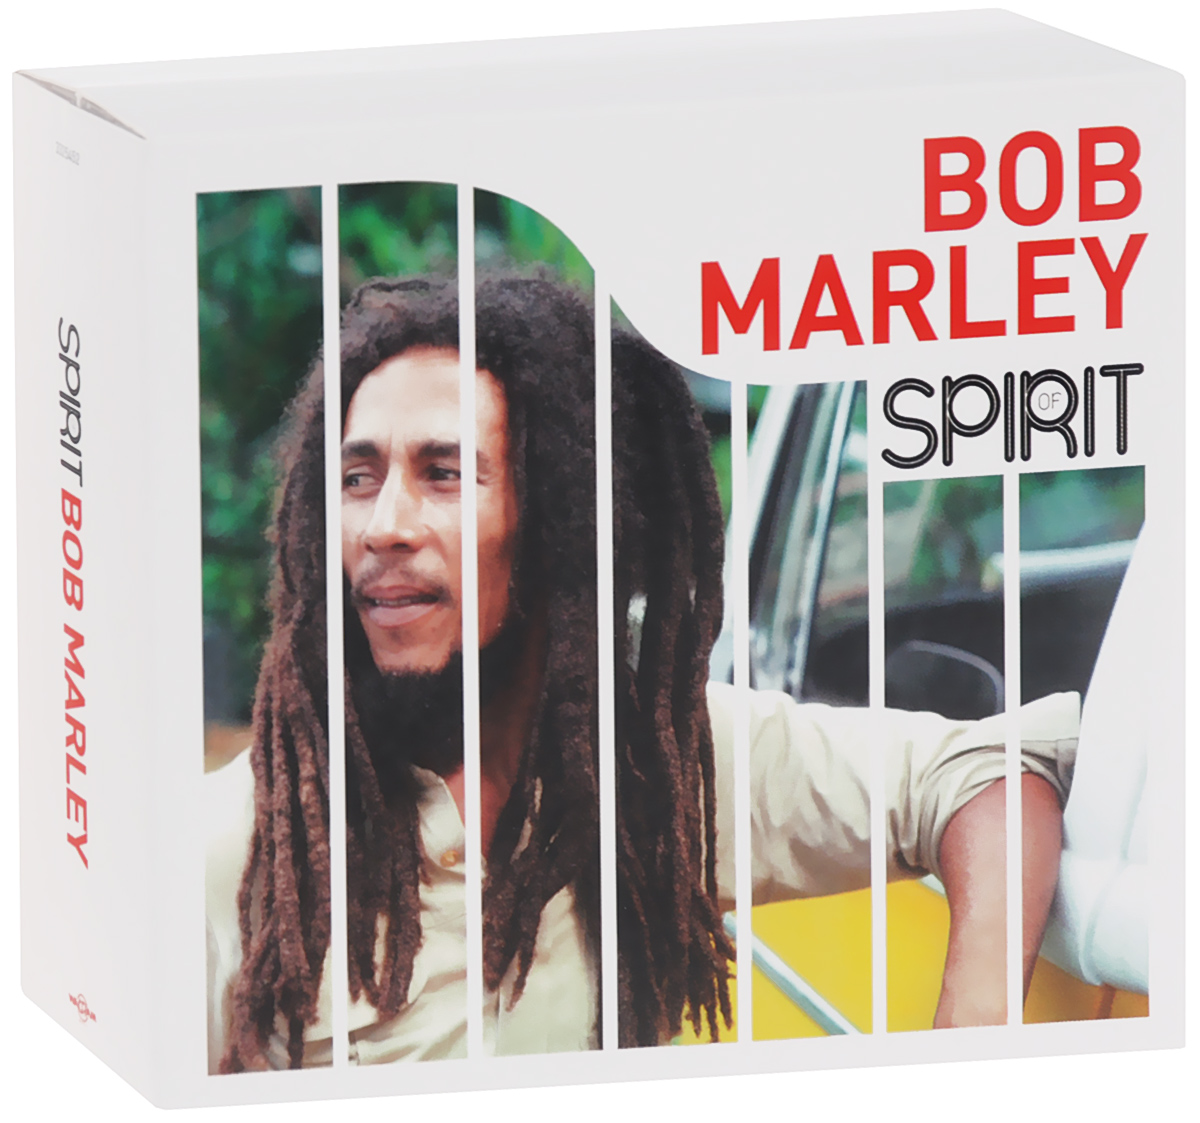 Боб Марли Spirit Of Bob Marley (4 CD) bob marley gold 1967–1972 2 cd